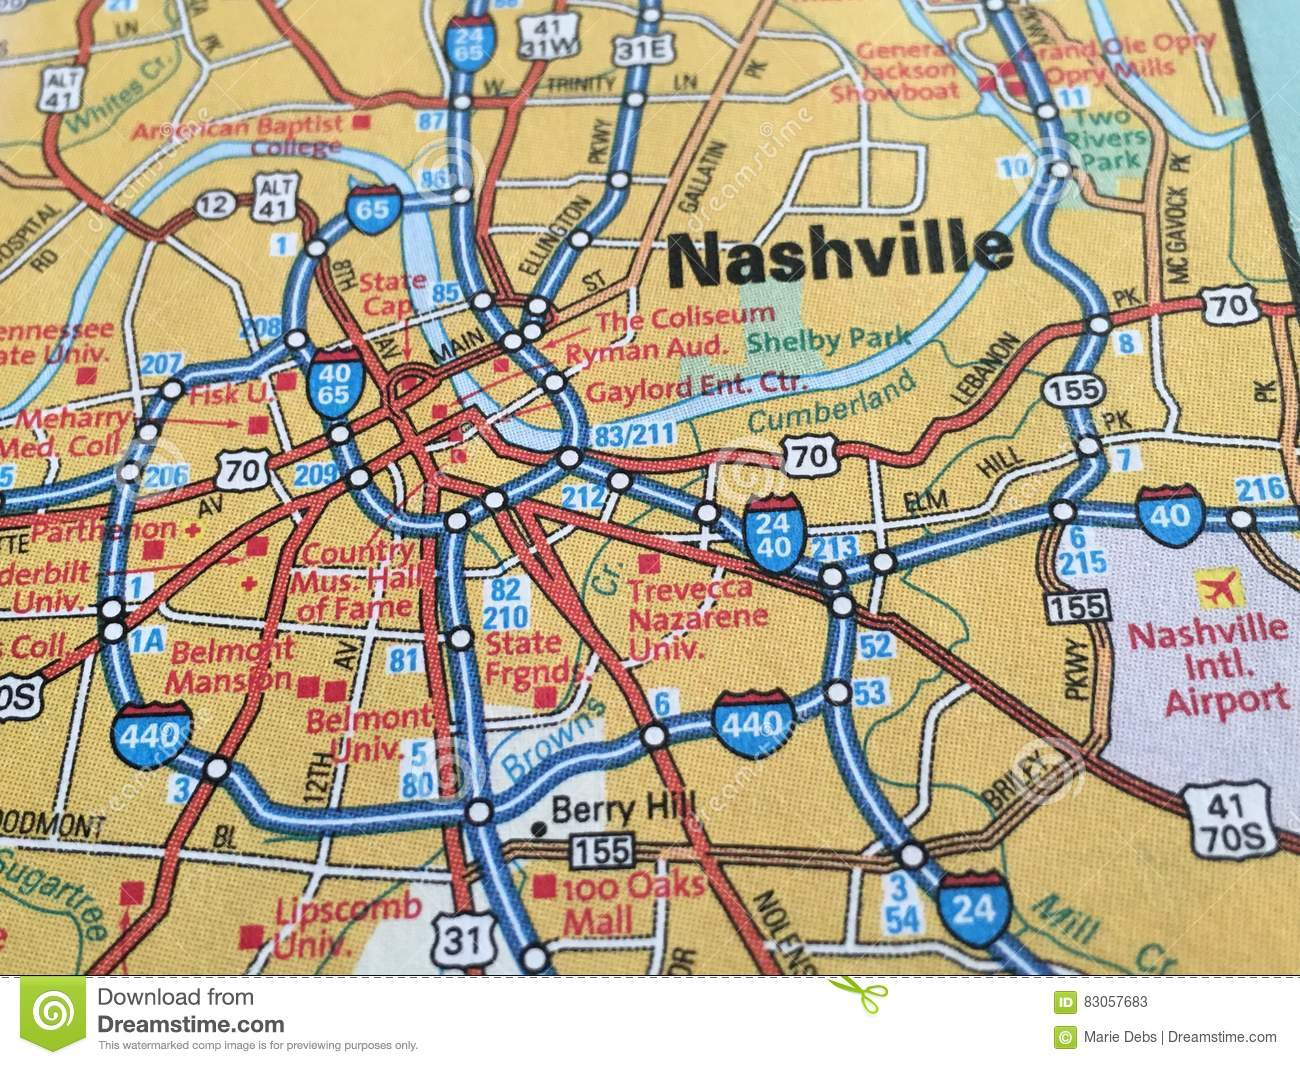 This is a graphic of Persnickety Printable Map of Nashville